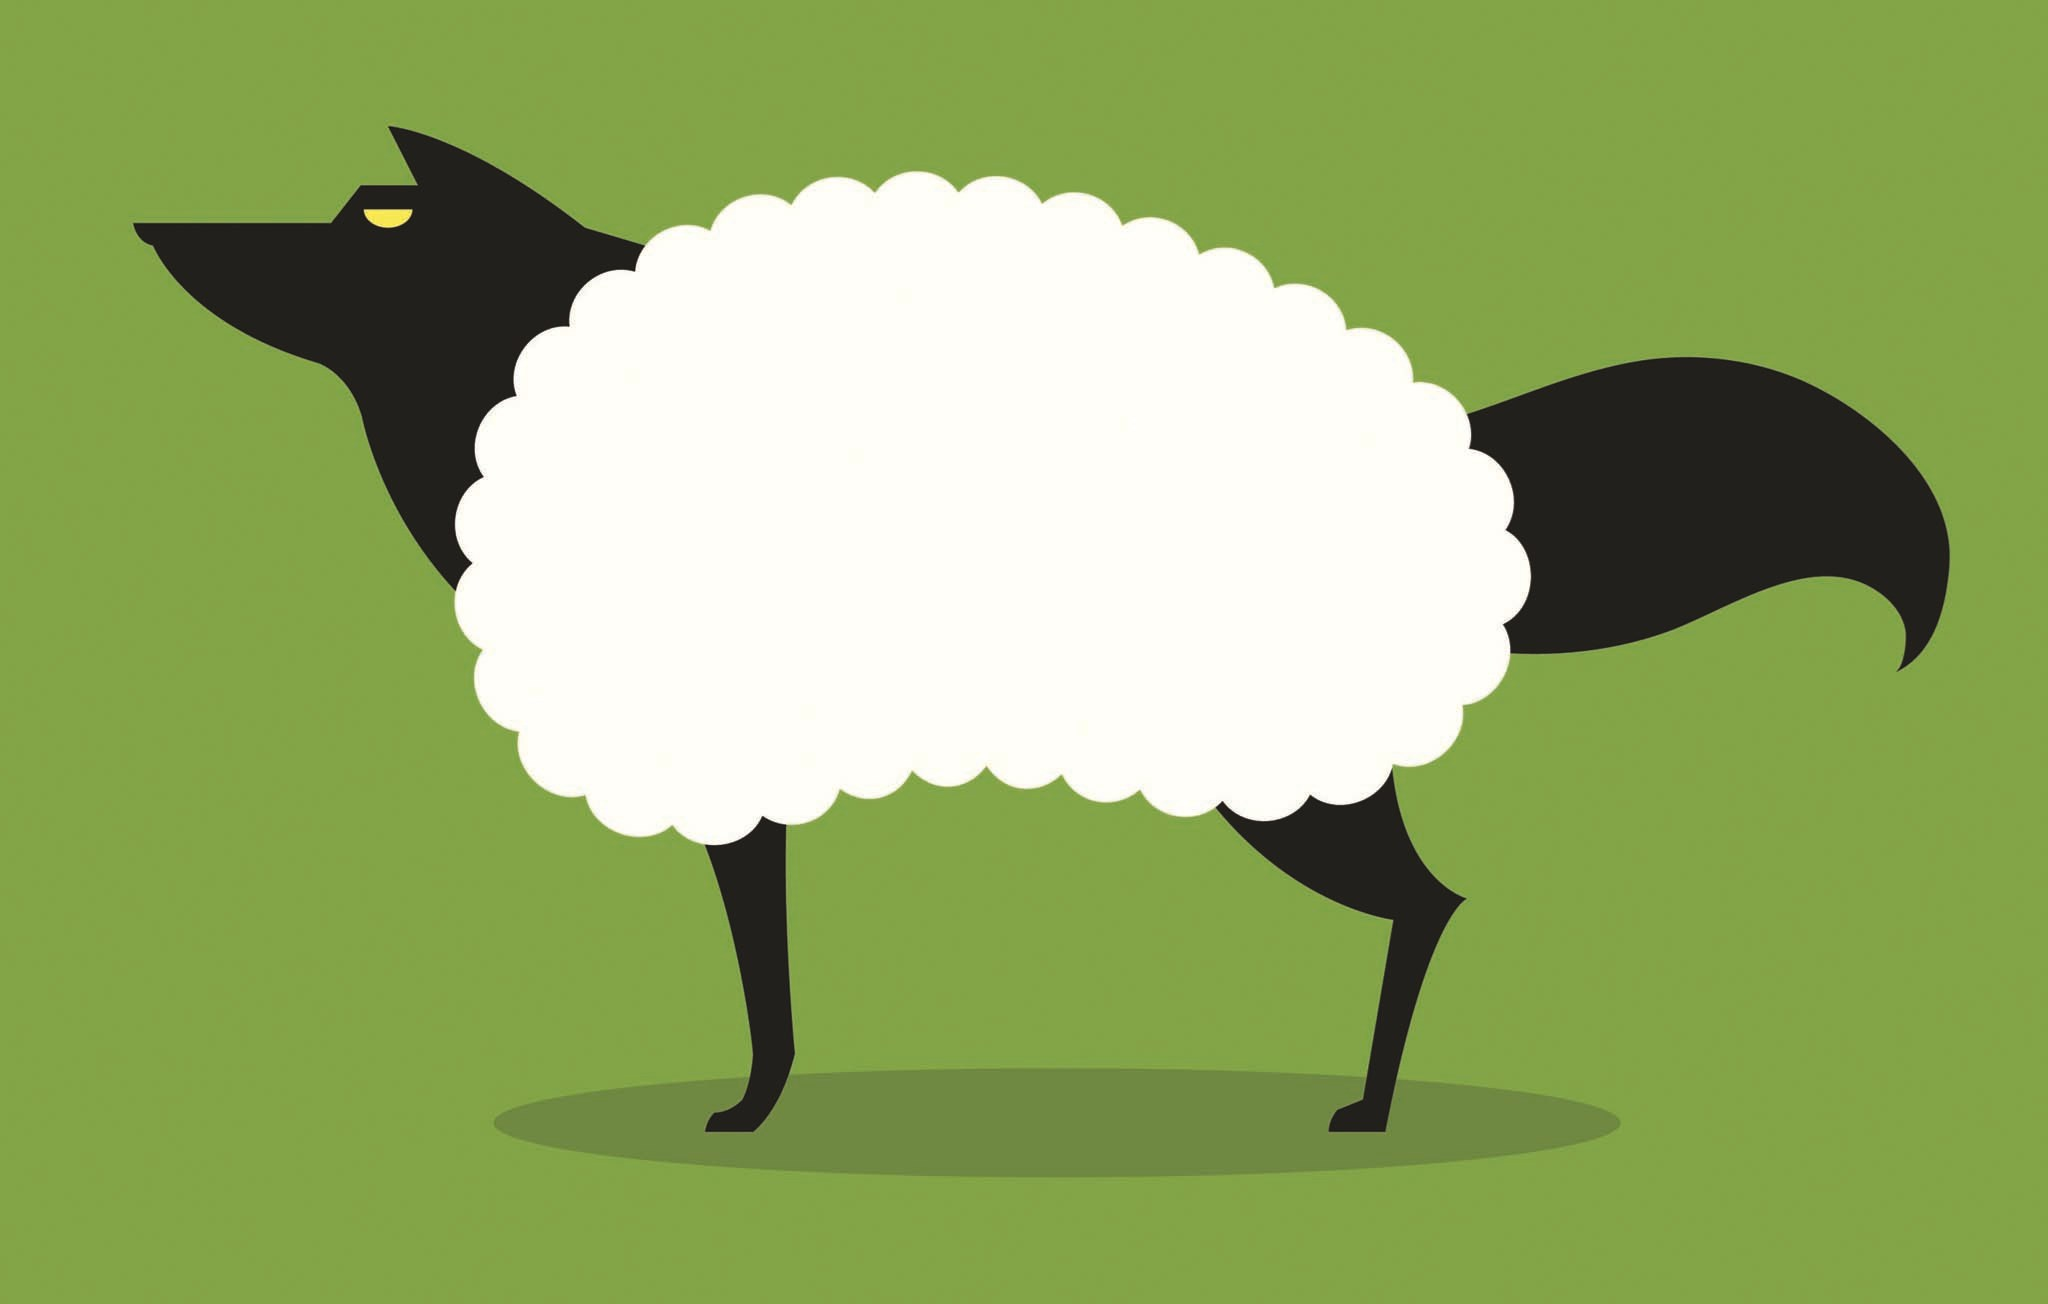 SVPENG is a wolf in sheep's clothing